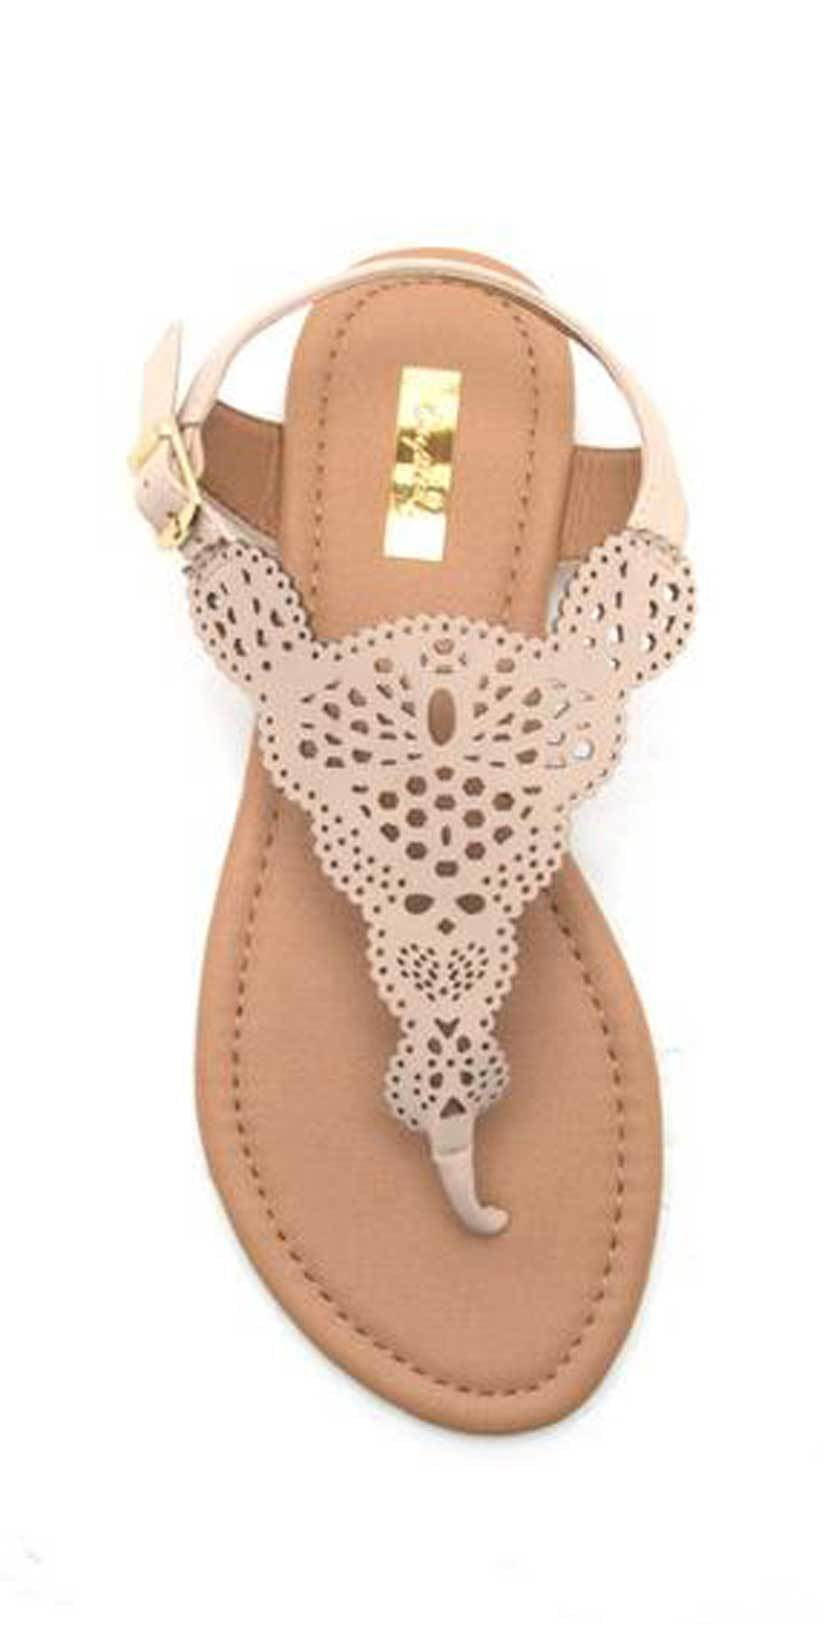 Qupid Shoes Archer Cut Out Sandal in Nude | 2018 | Nude sandal |Cut out Sandal